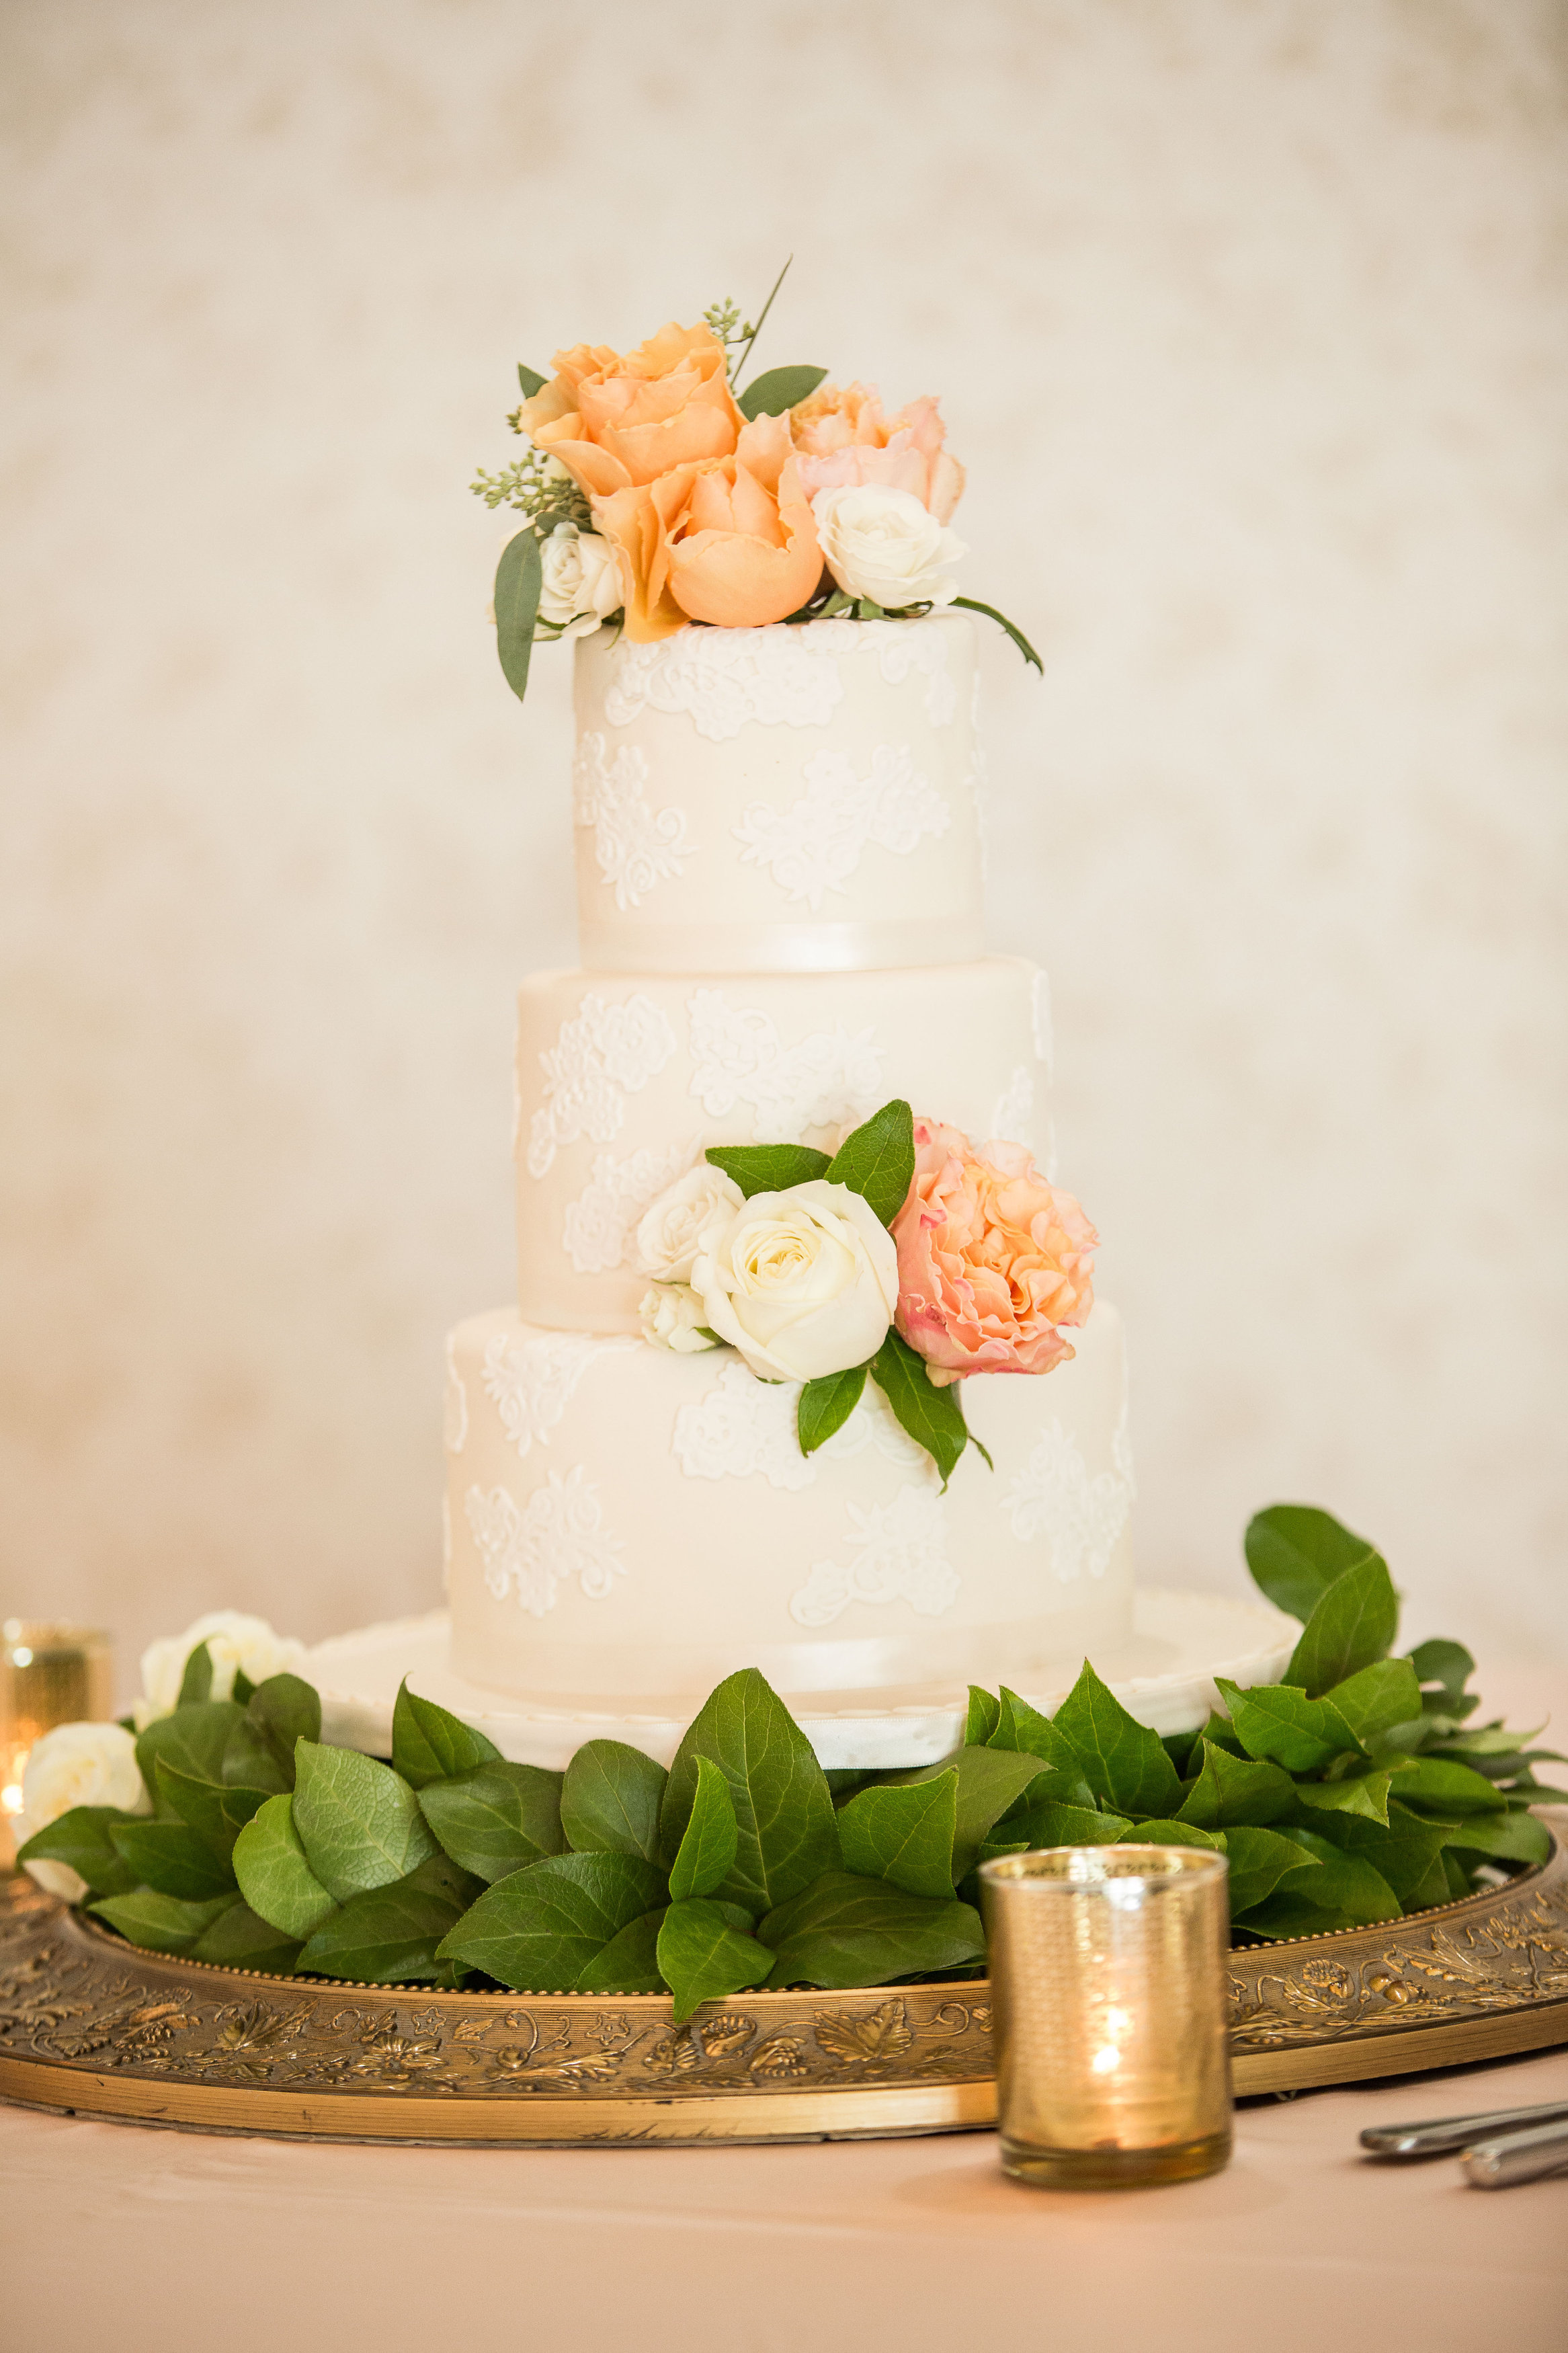 Ivory wedding cake with lace detail and peach sugar flowers